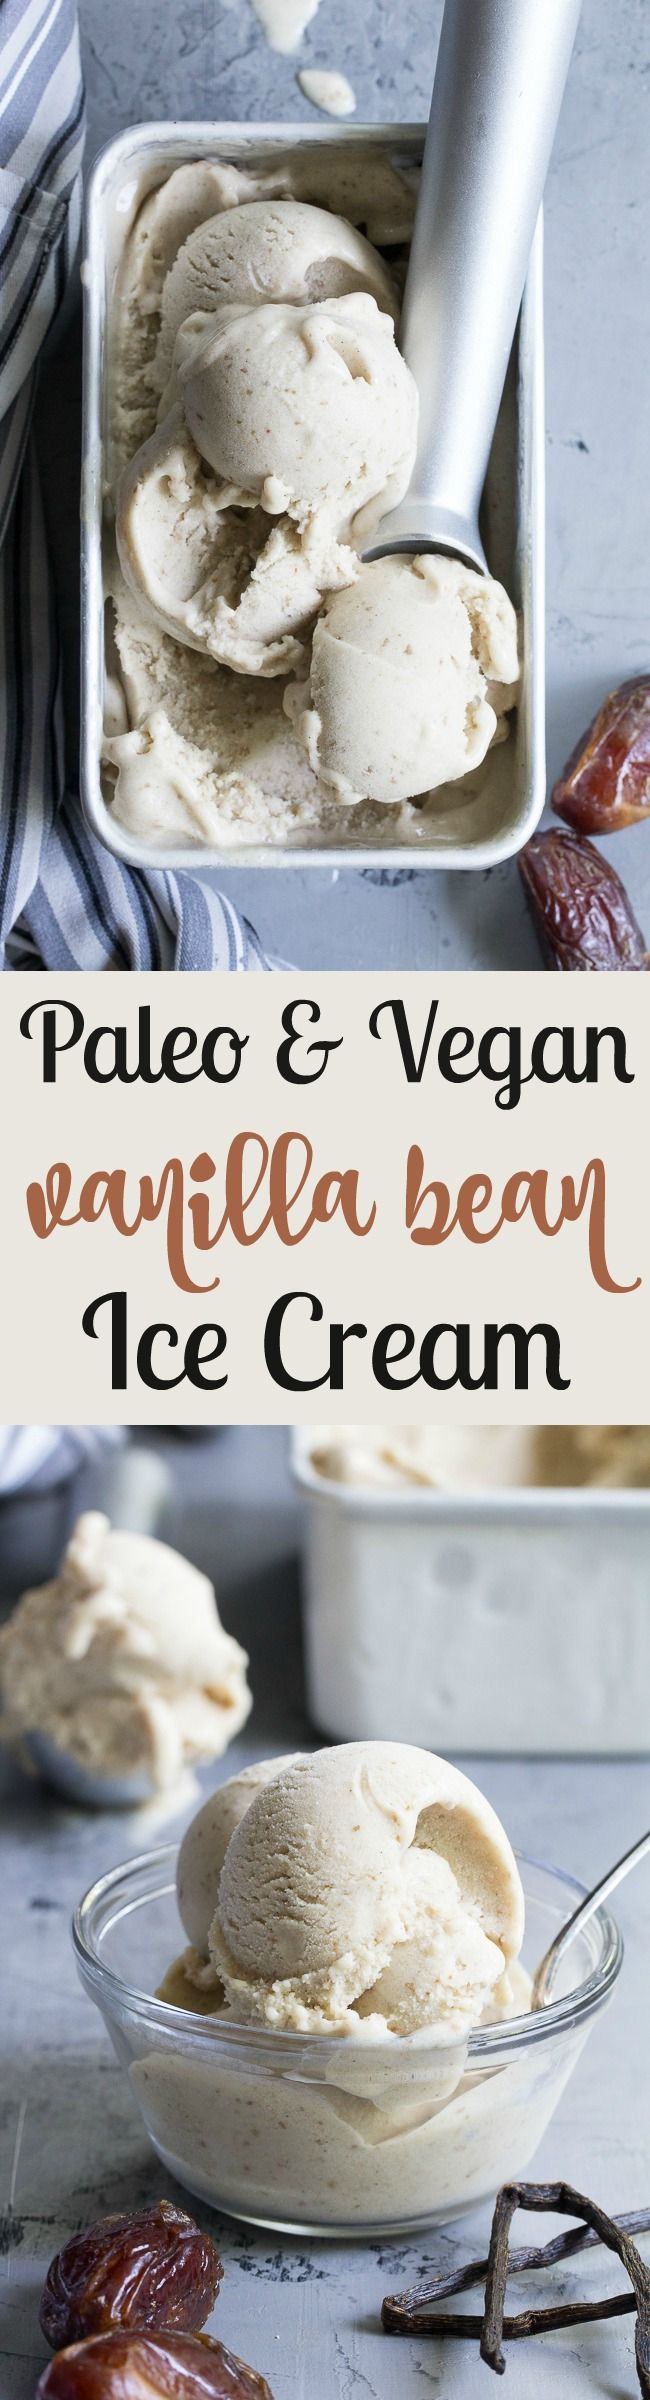 This dairy-free vanilla bean ice cream is made with coconut milk & cream and sweetened with dates for a naturally creamy texture and sweet flavor.  It's paleo and vegan, soy free and contains no refined sugar.  This healthy dessert is packed with vanilla flavor and ready for all your favorite toppings!